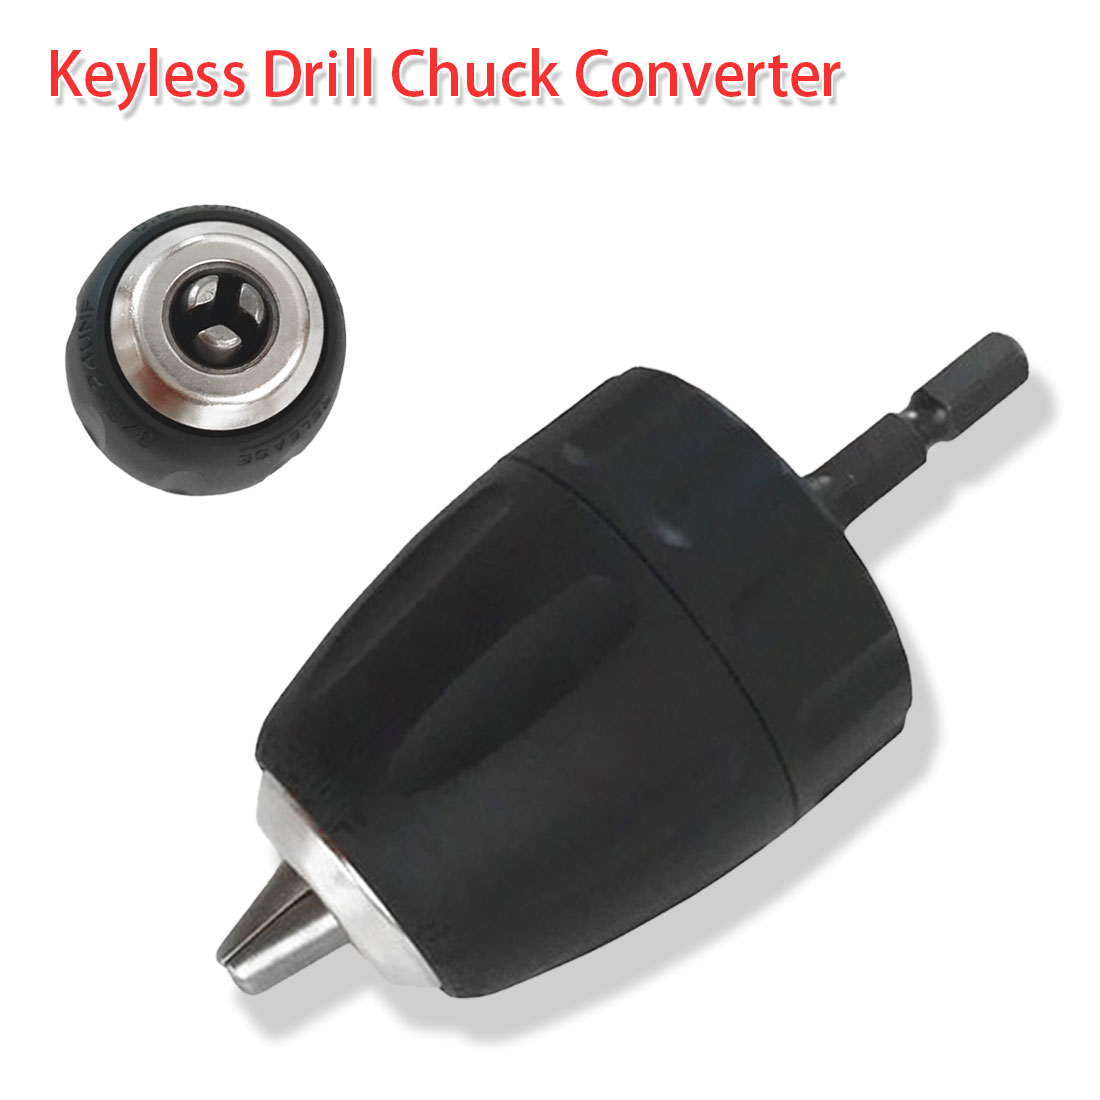 "0.8-10mm Keyless Drill Chuck Converter 3/8"" 24UNF+1/4 Hex Shank SDS Adaptor For Engraving Machine Woodworking Screwdriver Tool"